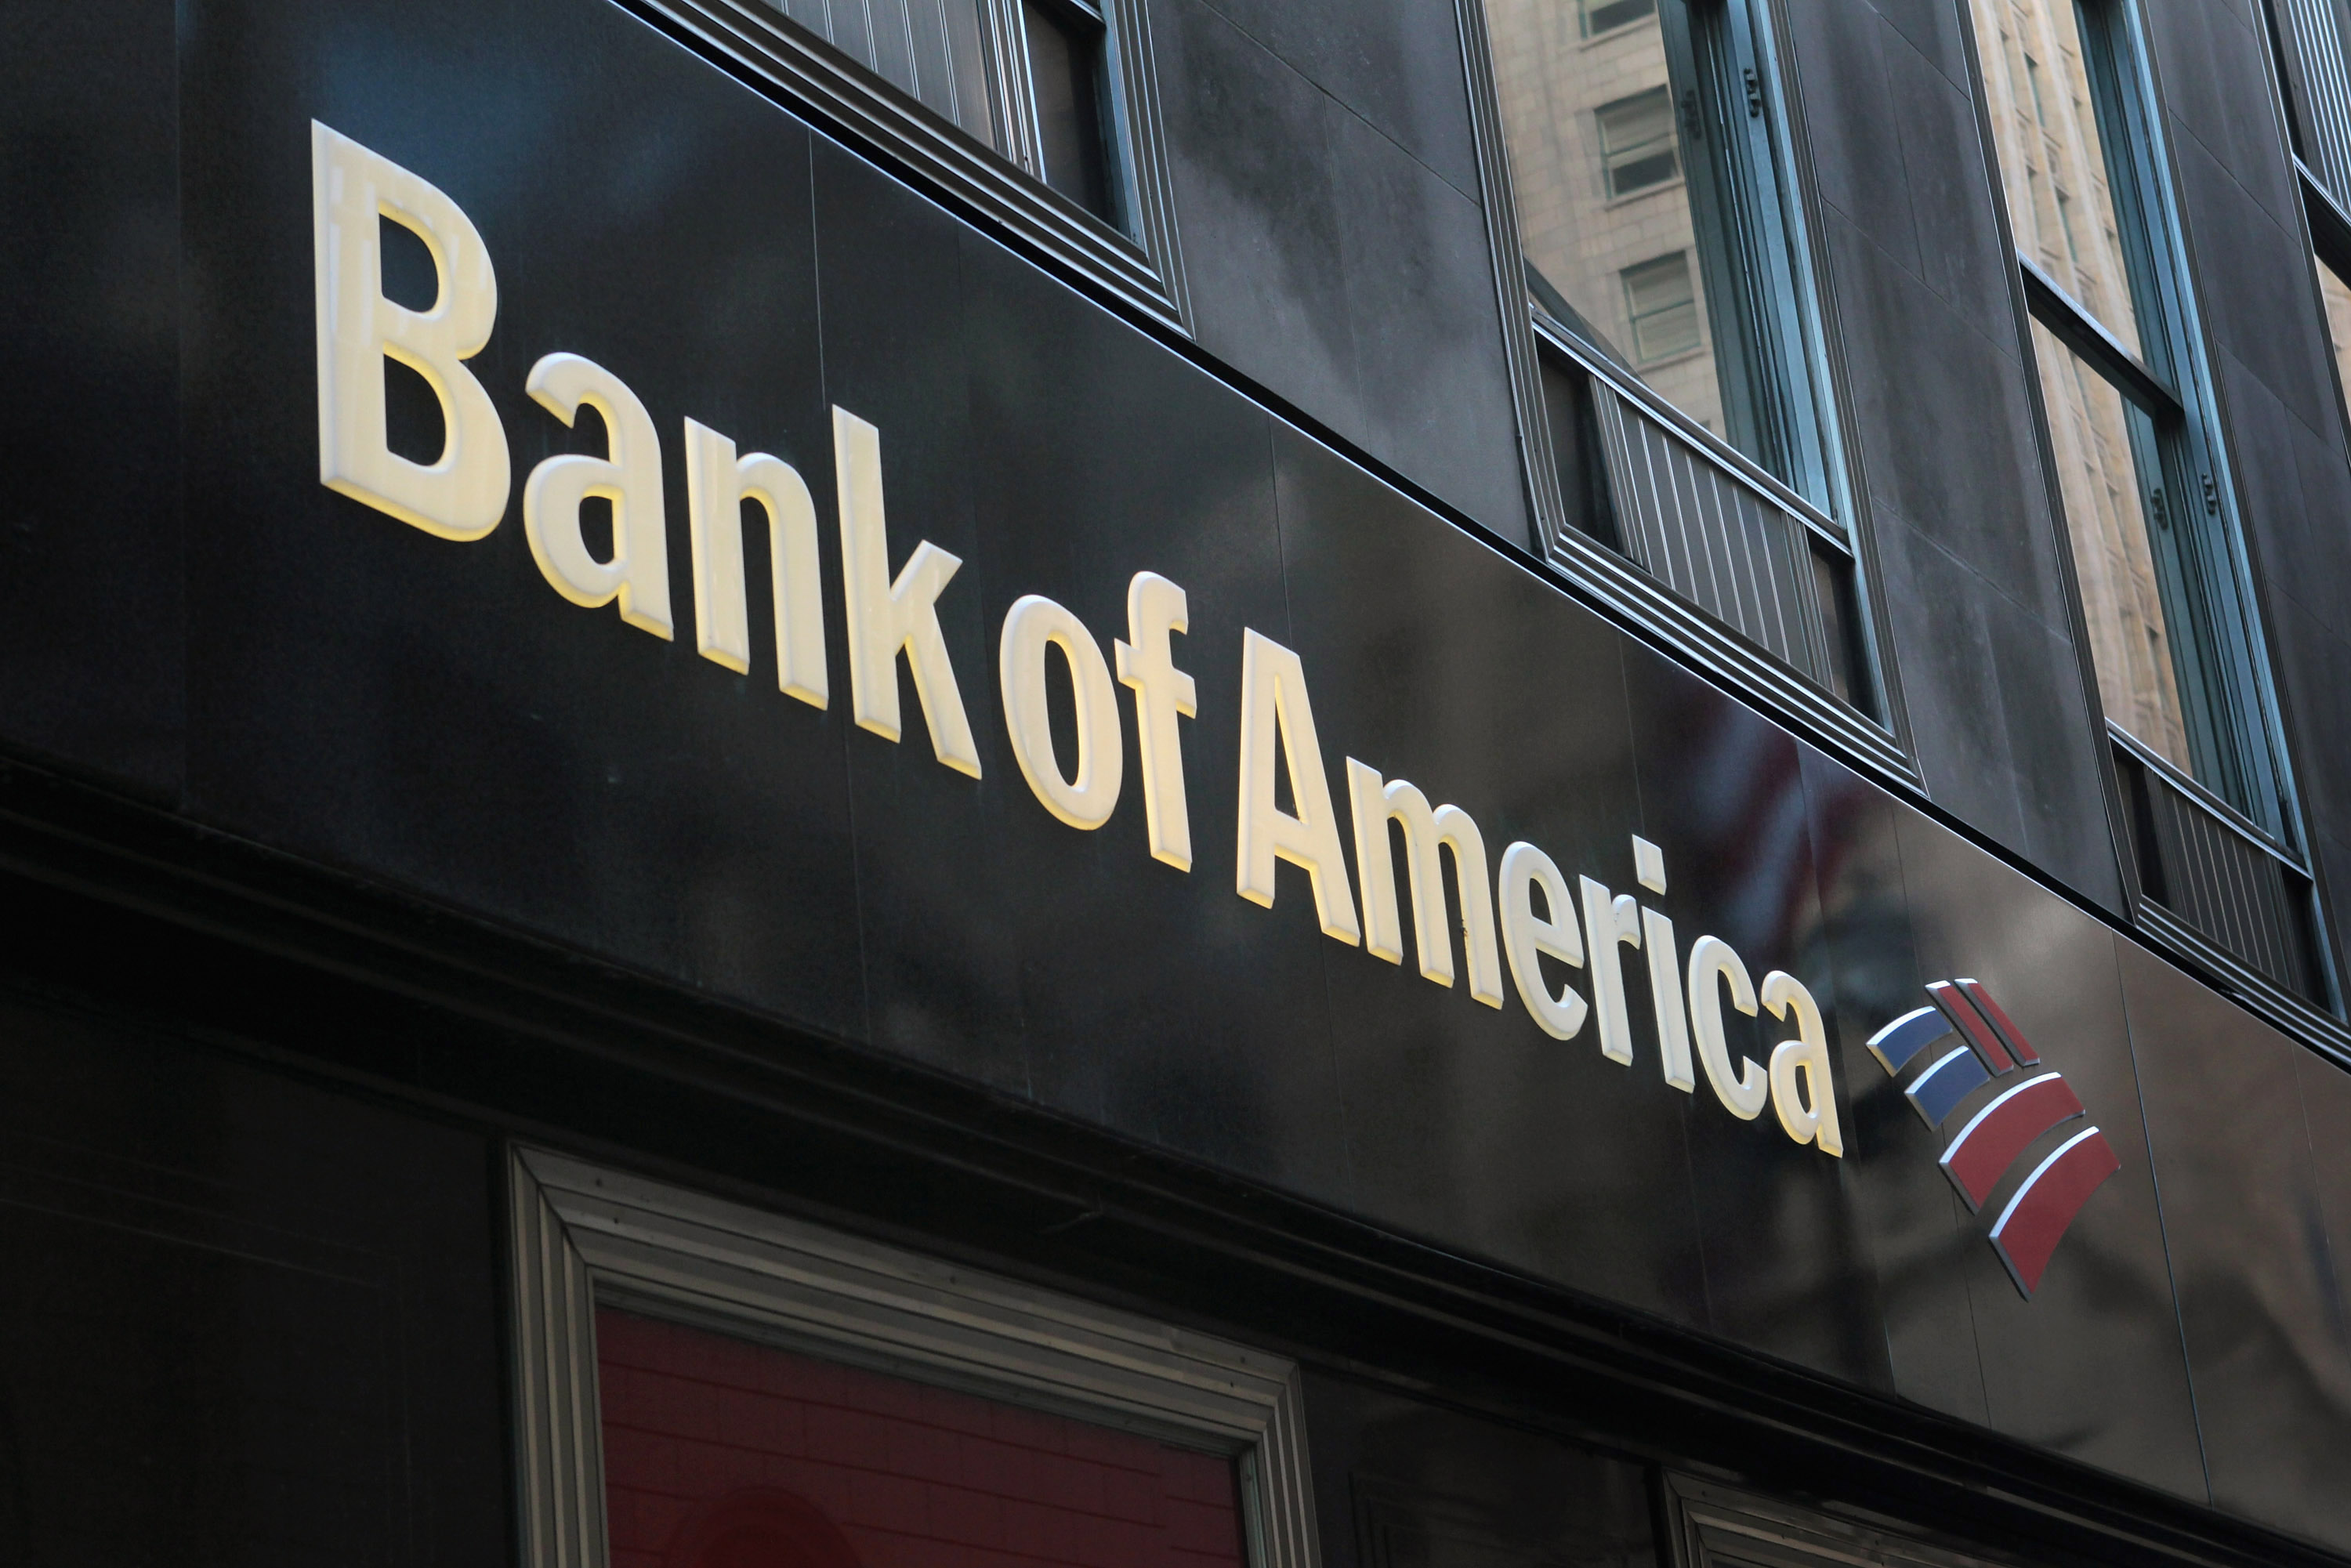 Thursday's Thoughts – C'mon, Bank of America is getting into the luxury hotel business!